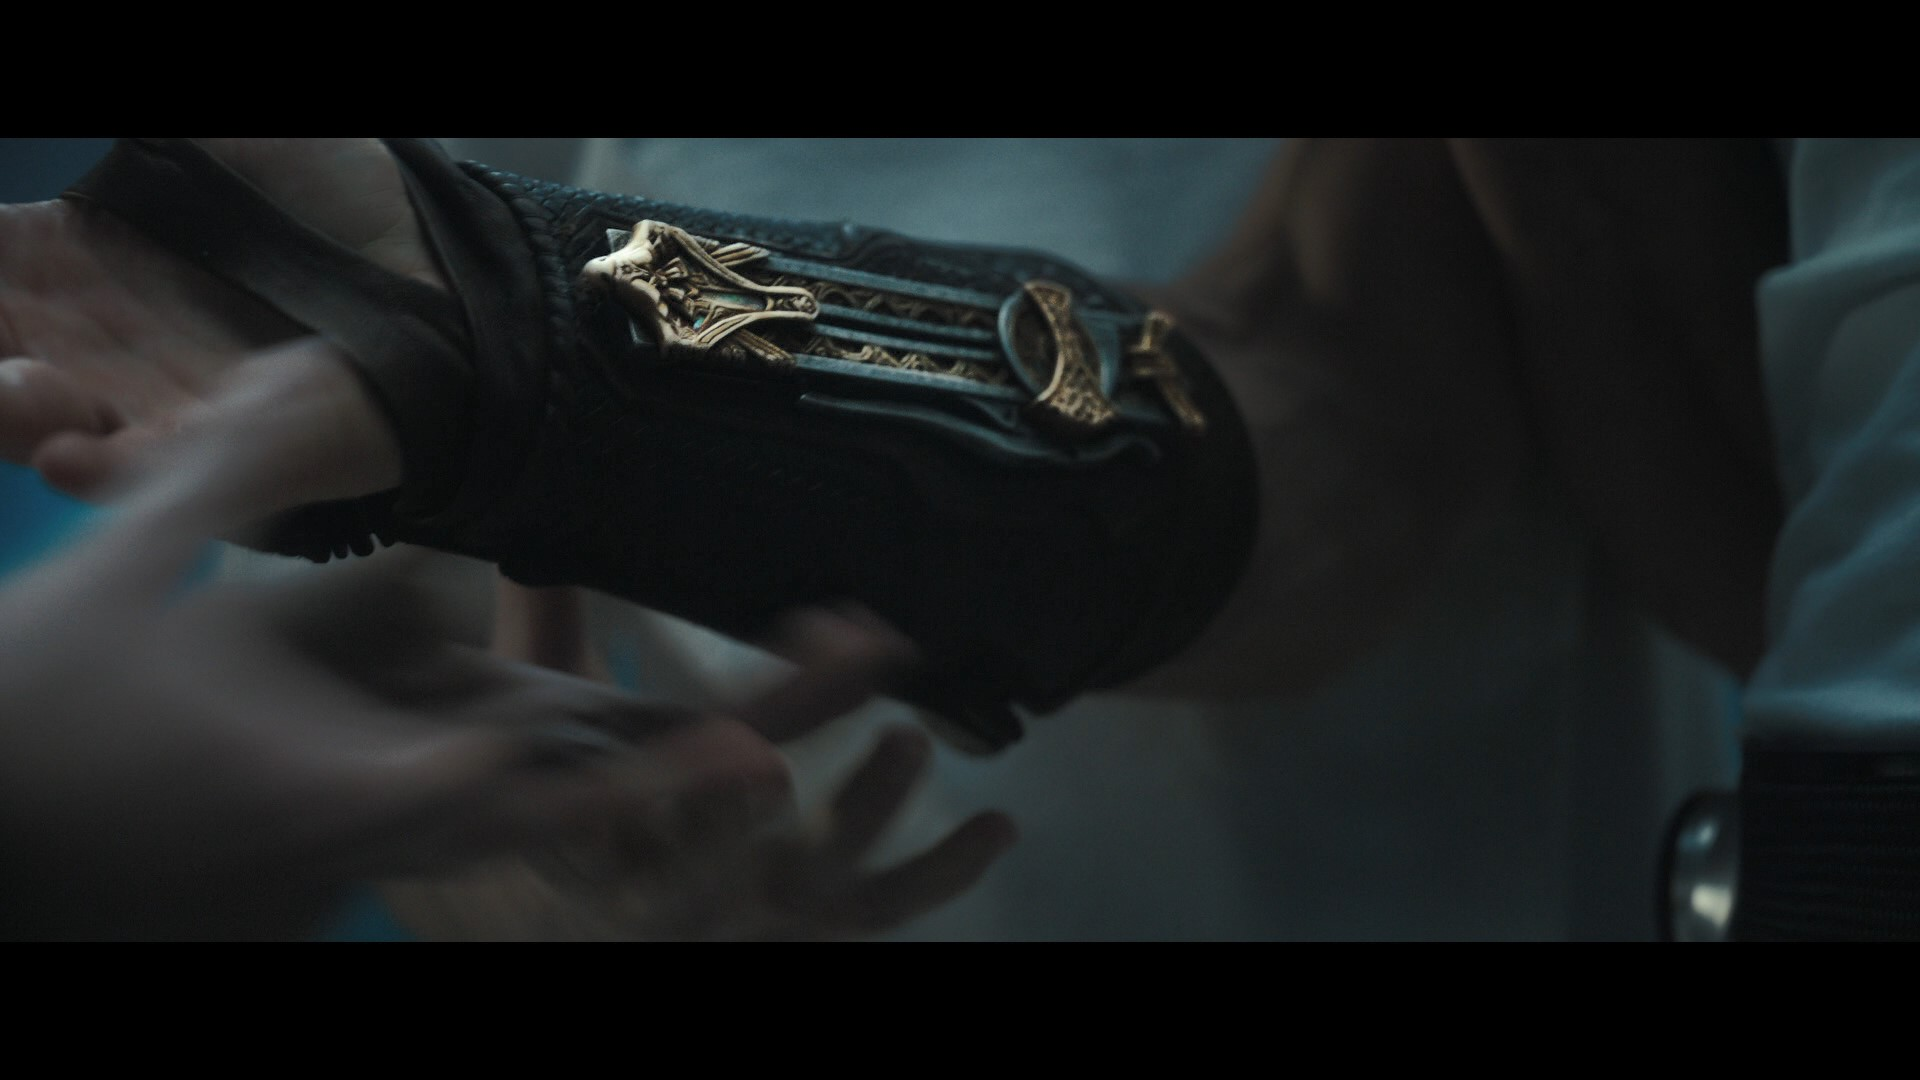 ASSASSIN'S CREED (2016) - Aguilar's (Michael Fassbender) SFX Wristblade - Image 11 of 17